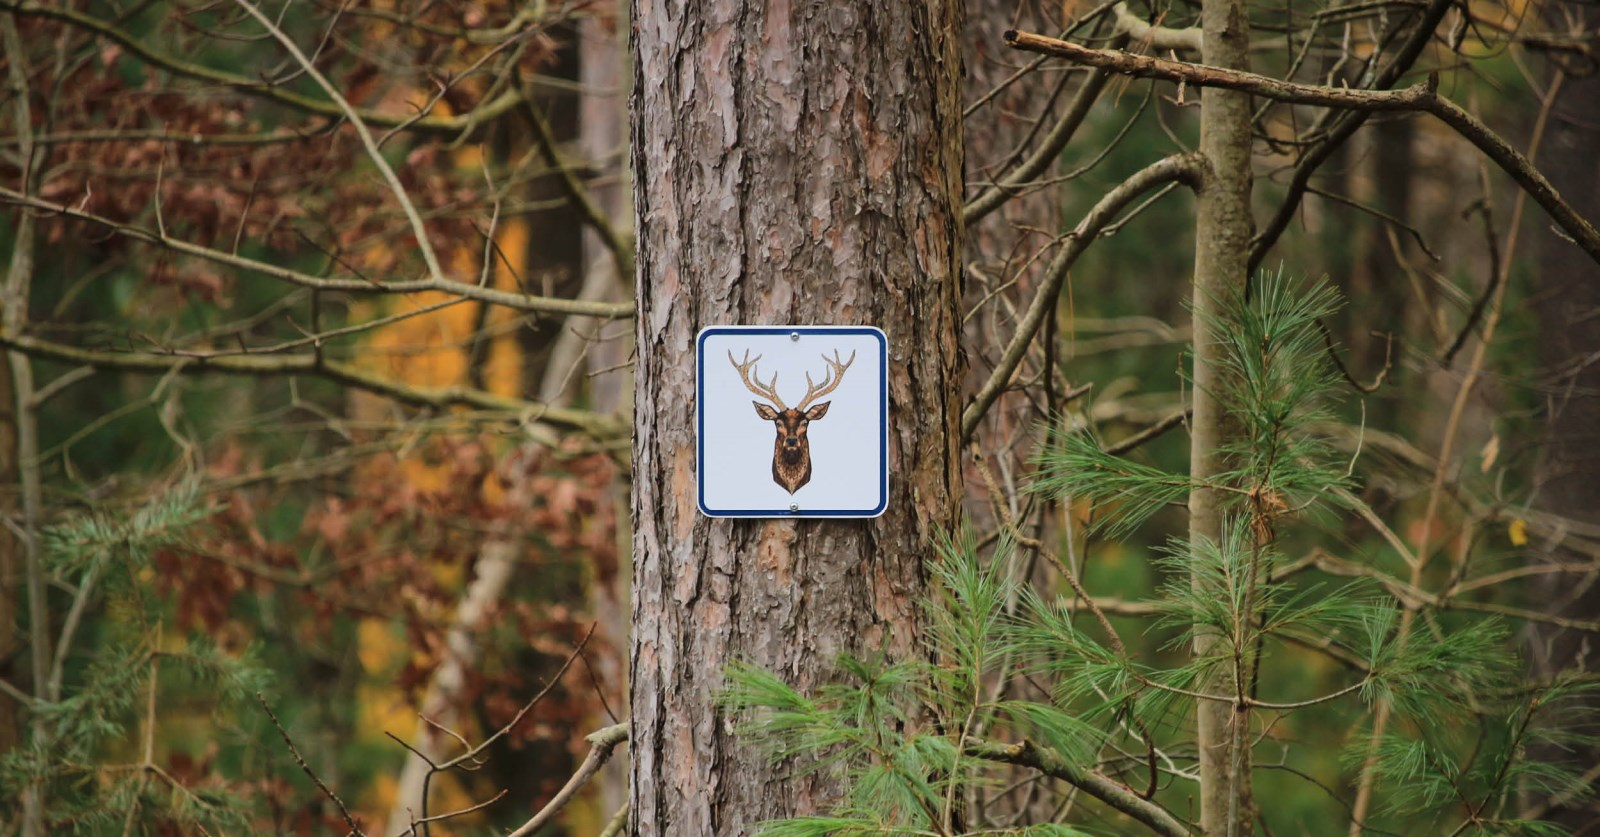 Trail sign on tree in County Forest